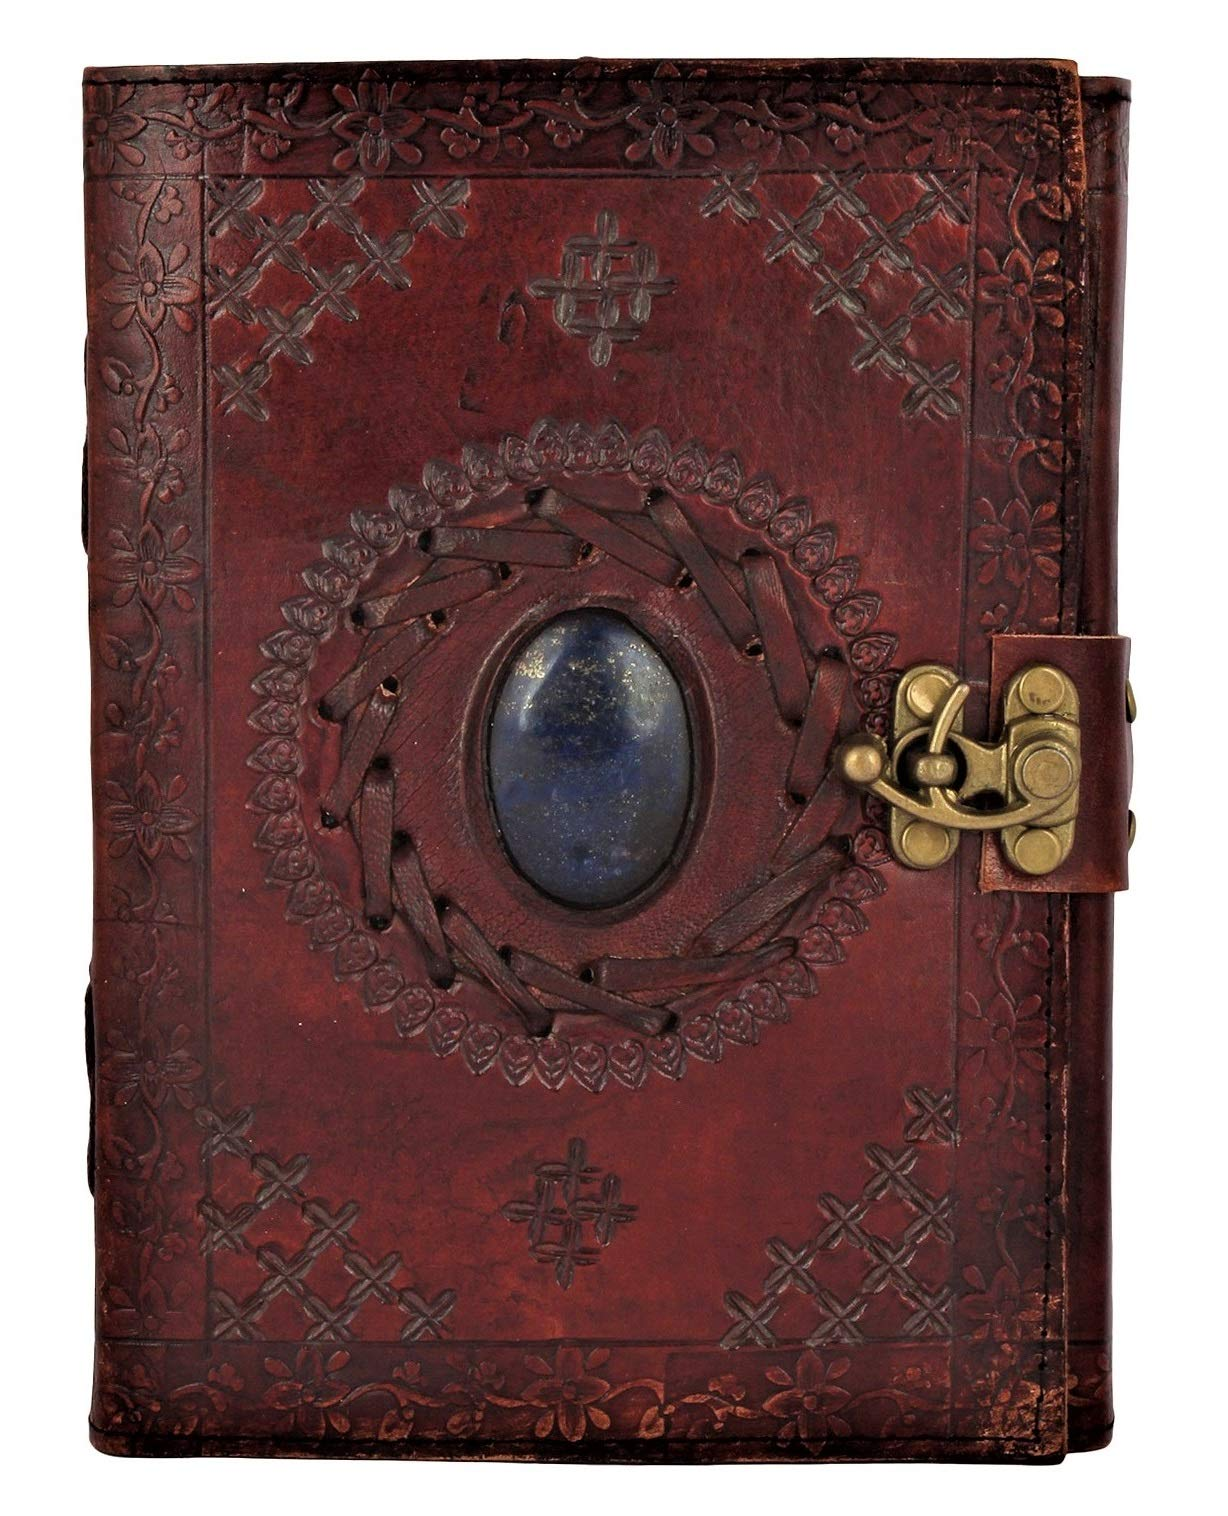 Leather Bound Journal for Men Women with Semi-Precious Stone & Buckle Closure - Book of Shadow Handmade Leather Travel Writing Notebook Diary Gift for Him Her